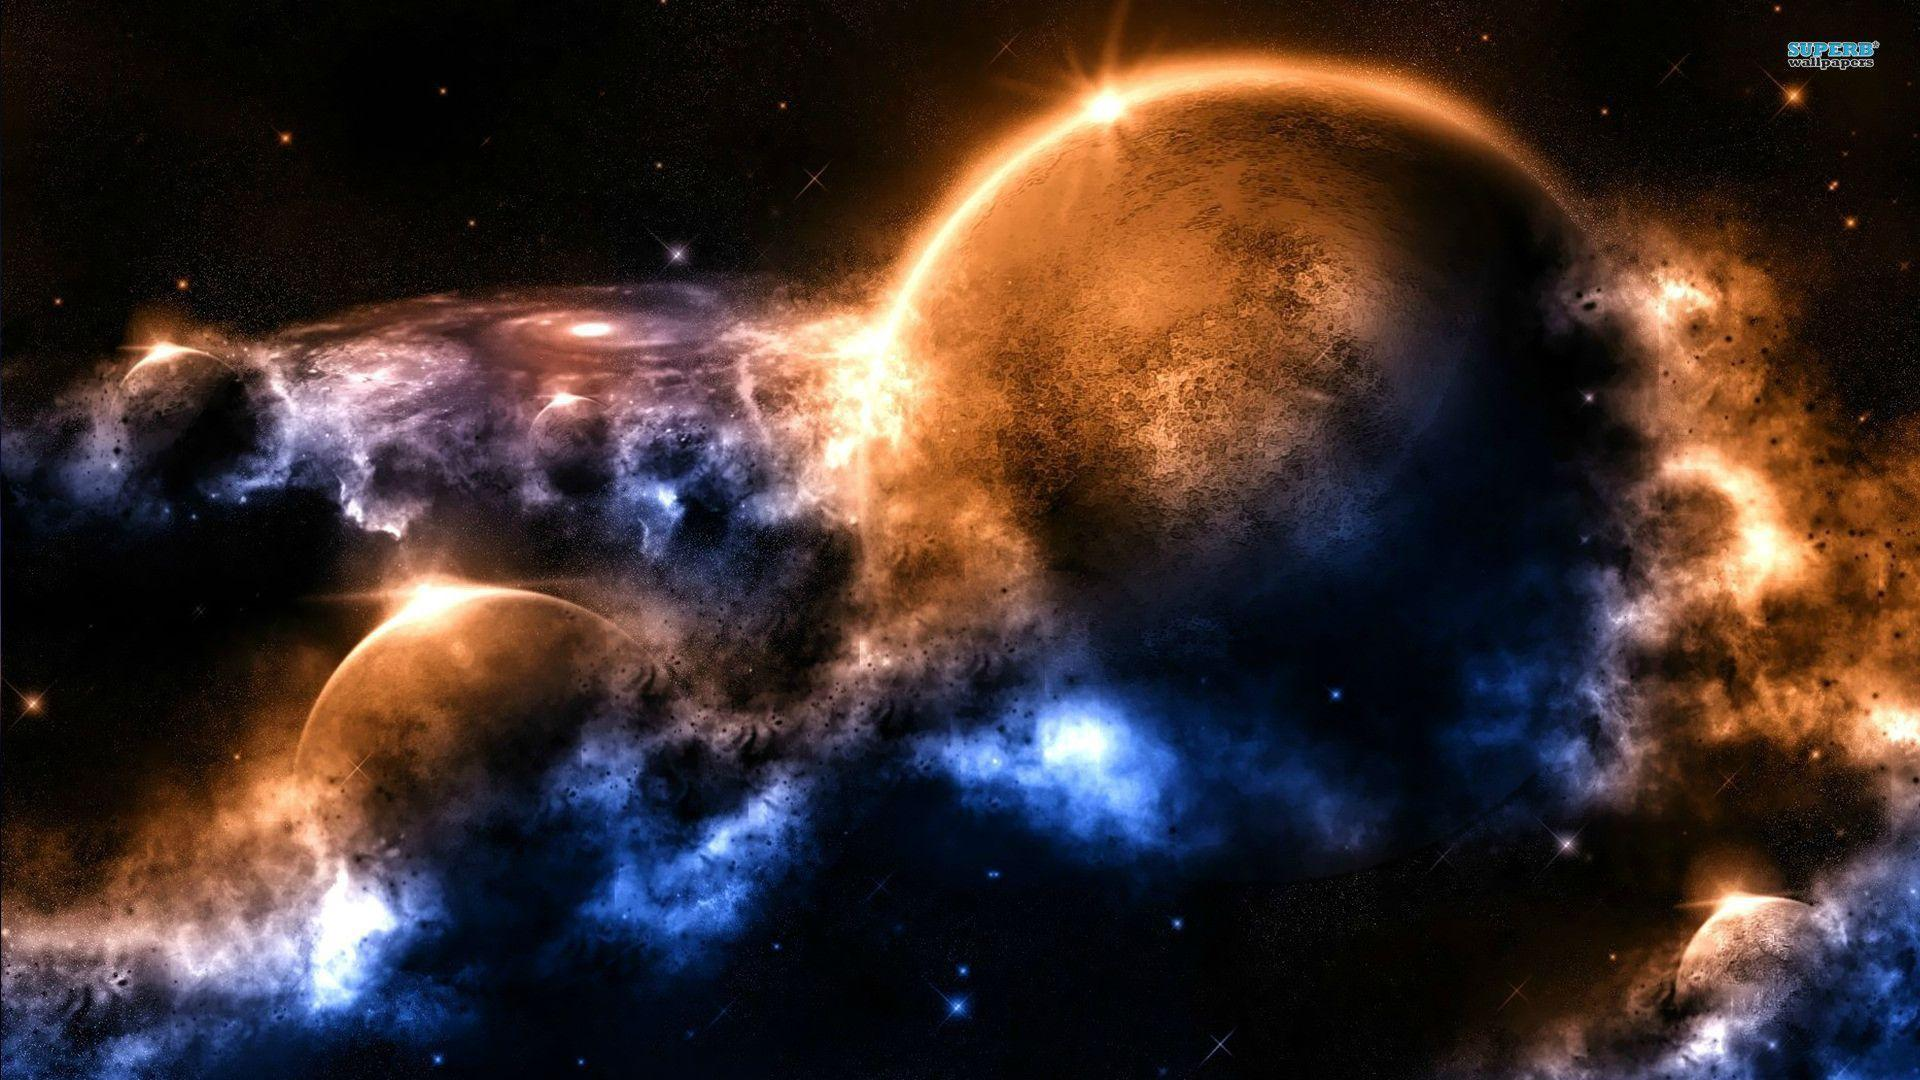 Space Backgrounds 1920x1080 - Wallpaper Cave